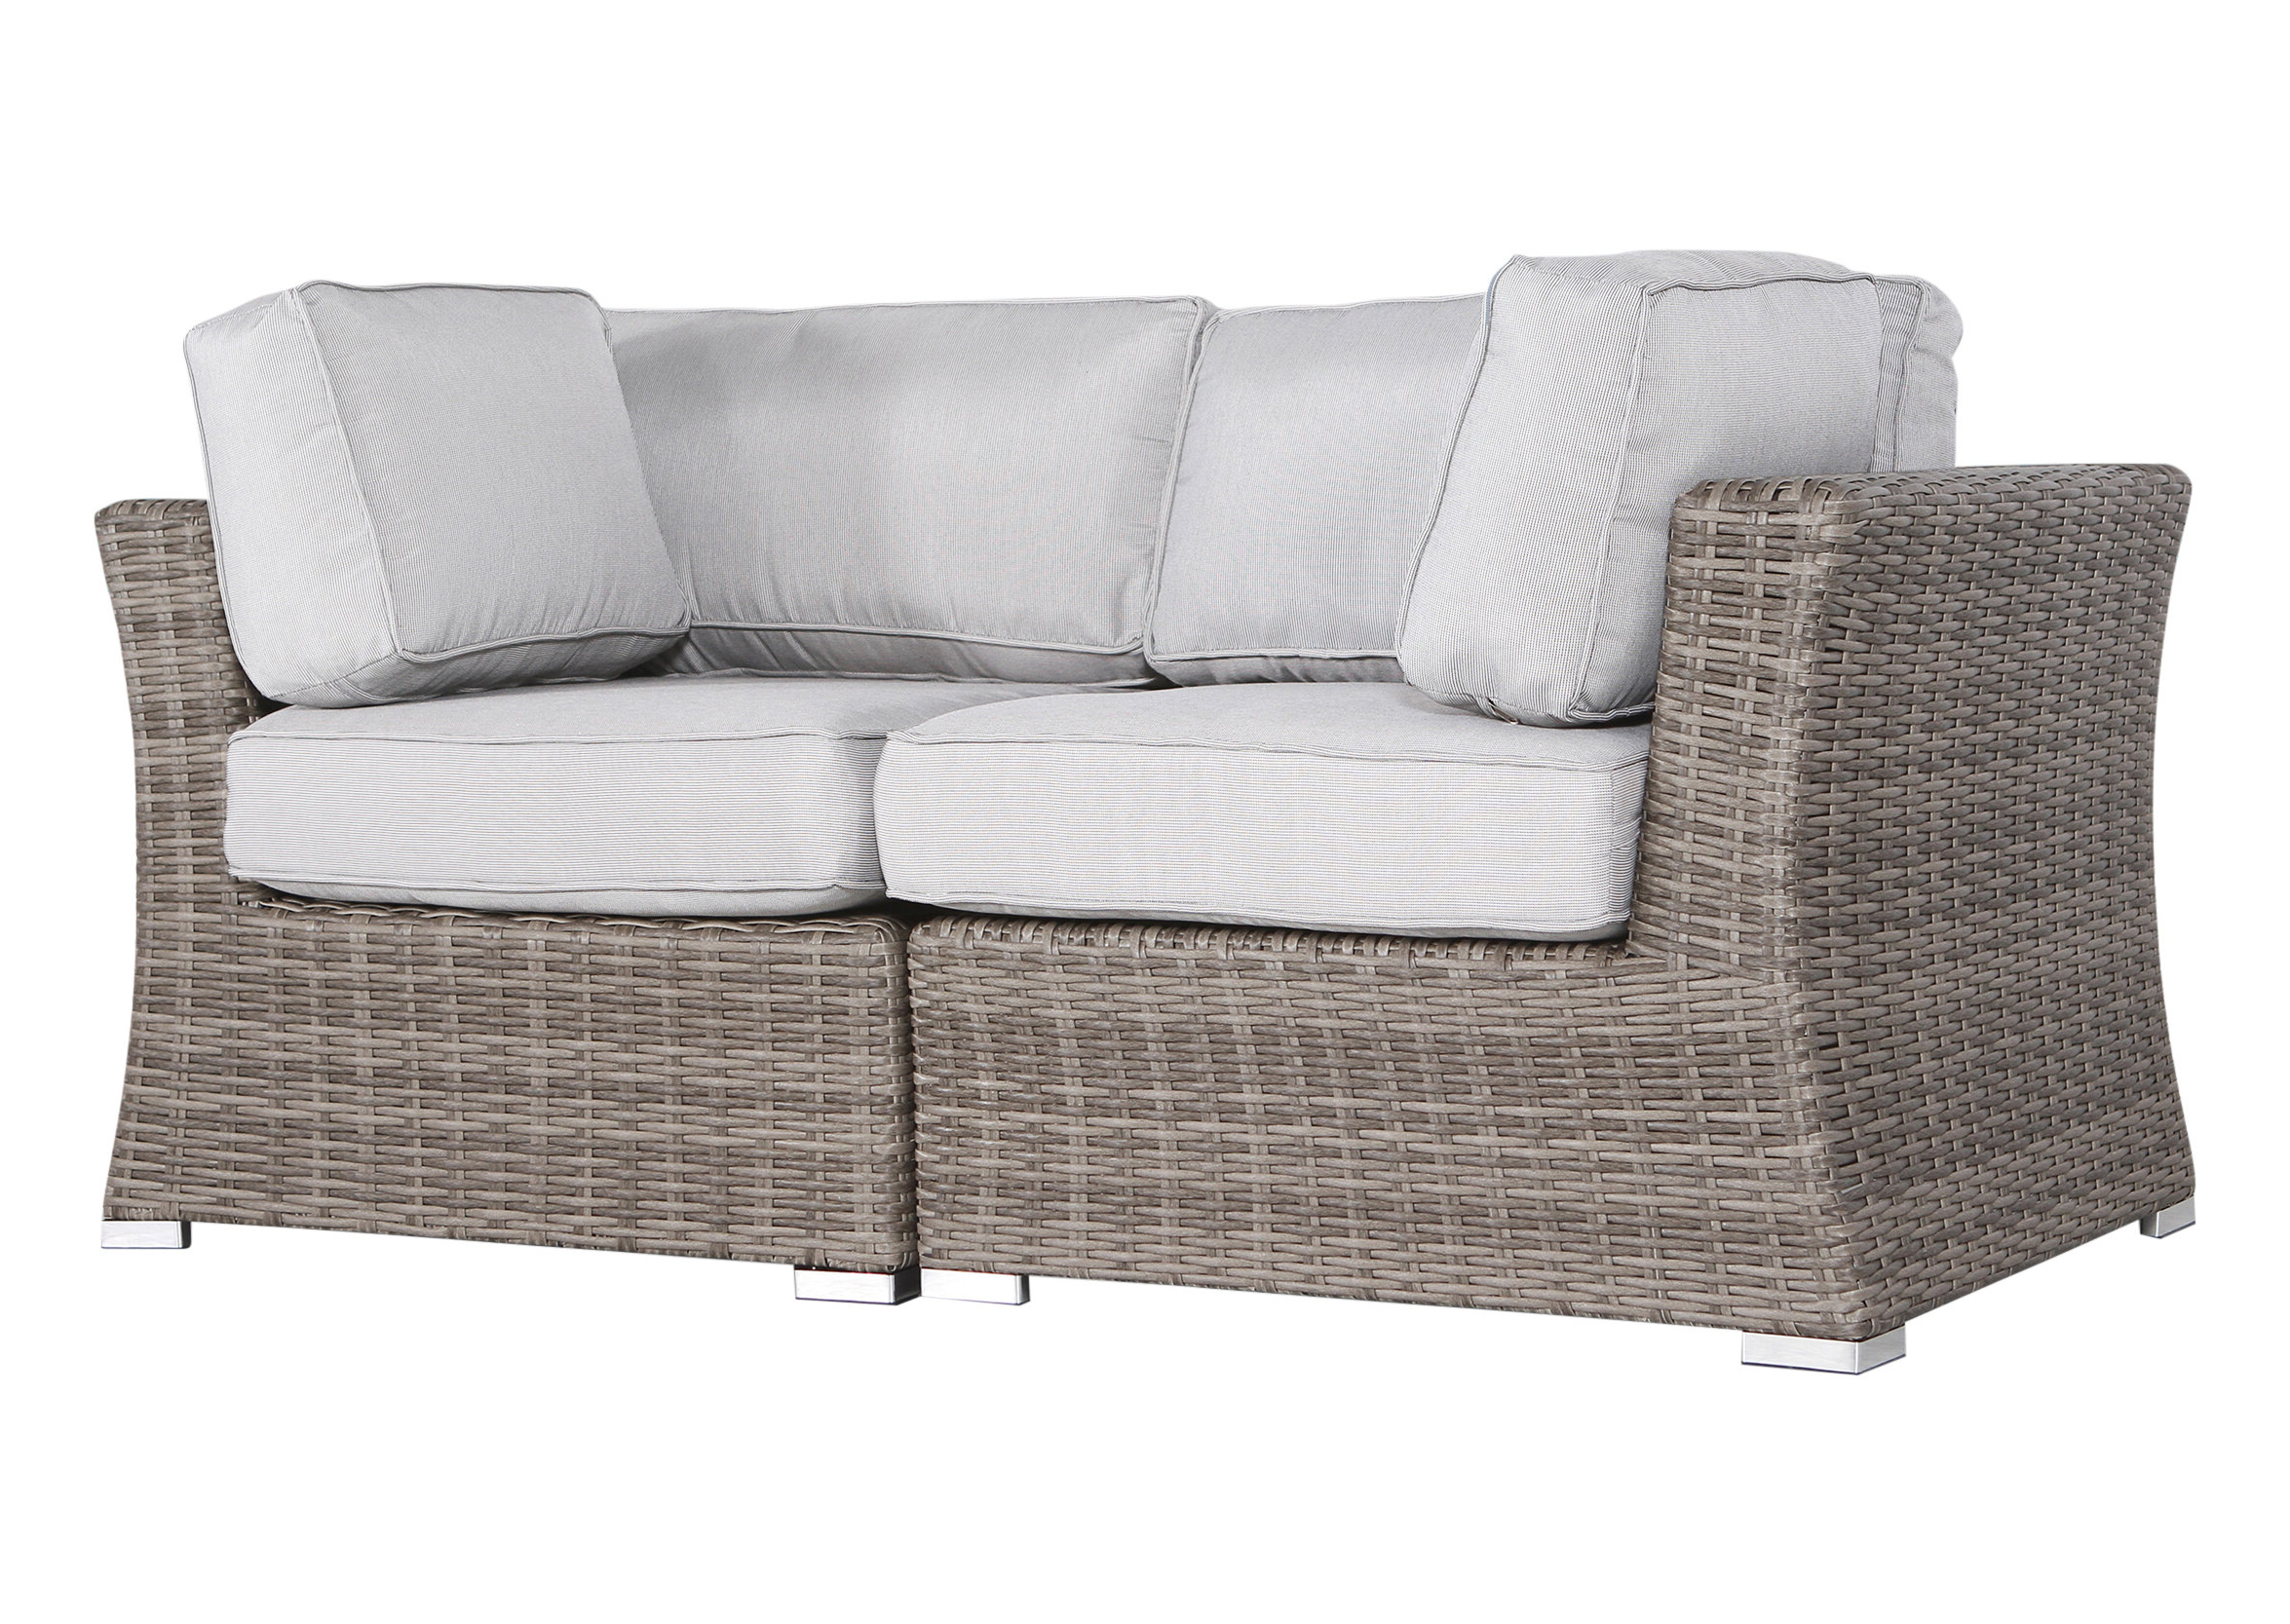 Huddleson Contemporary Loveseat With Cushion Inside Well Liked Avadi Outdoor Sofas & Ottomans 3 Piece Set (View 19 of 25)